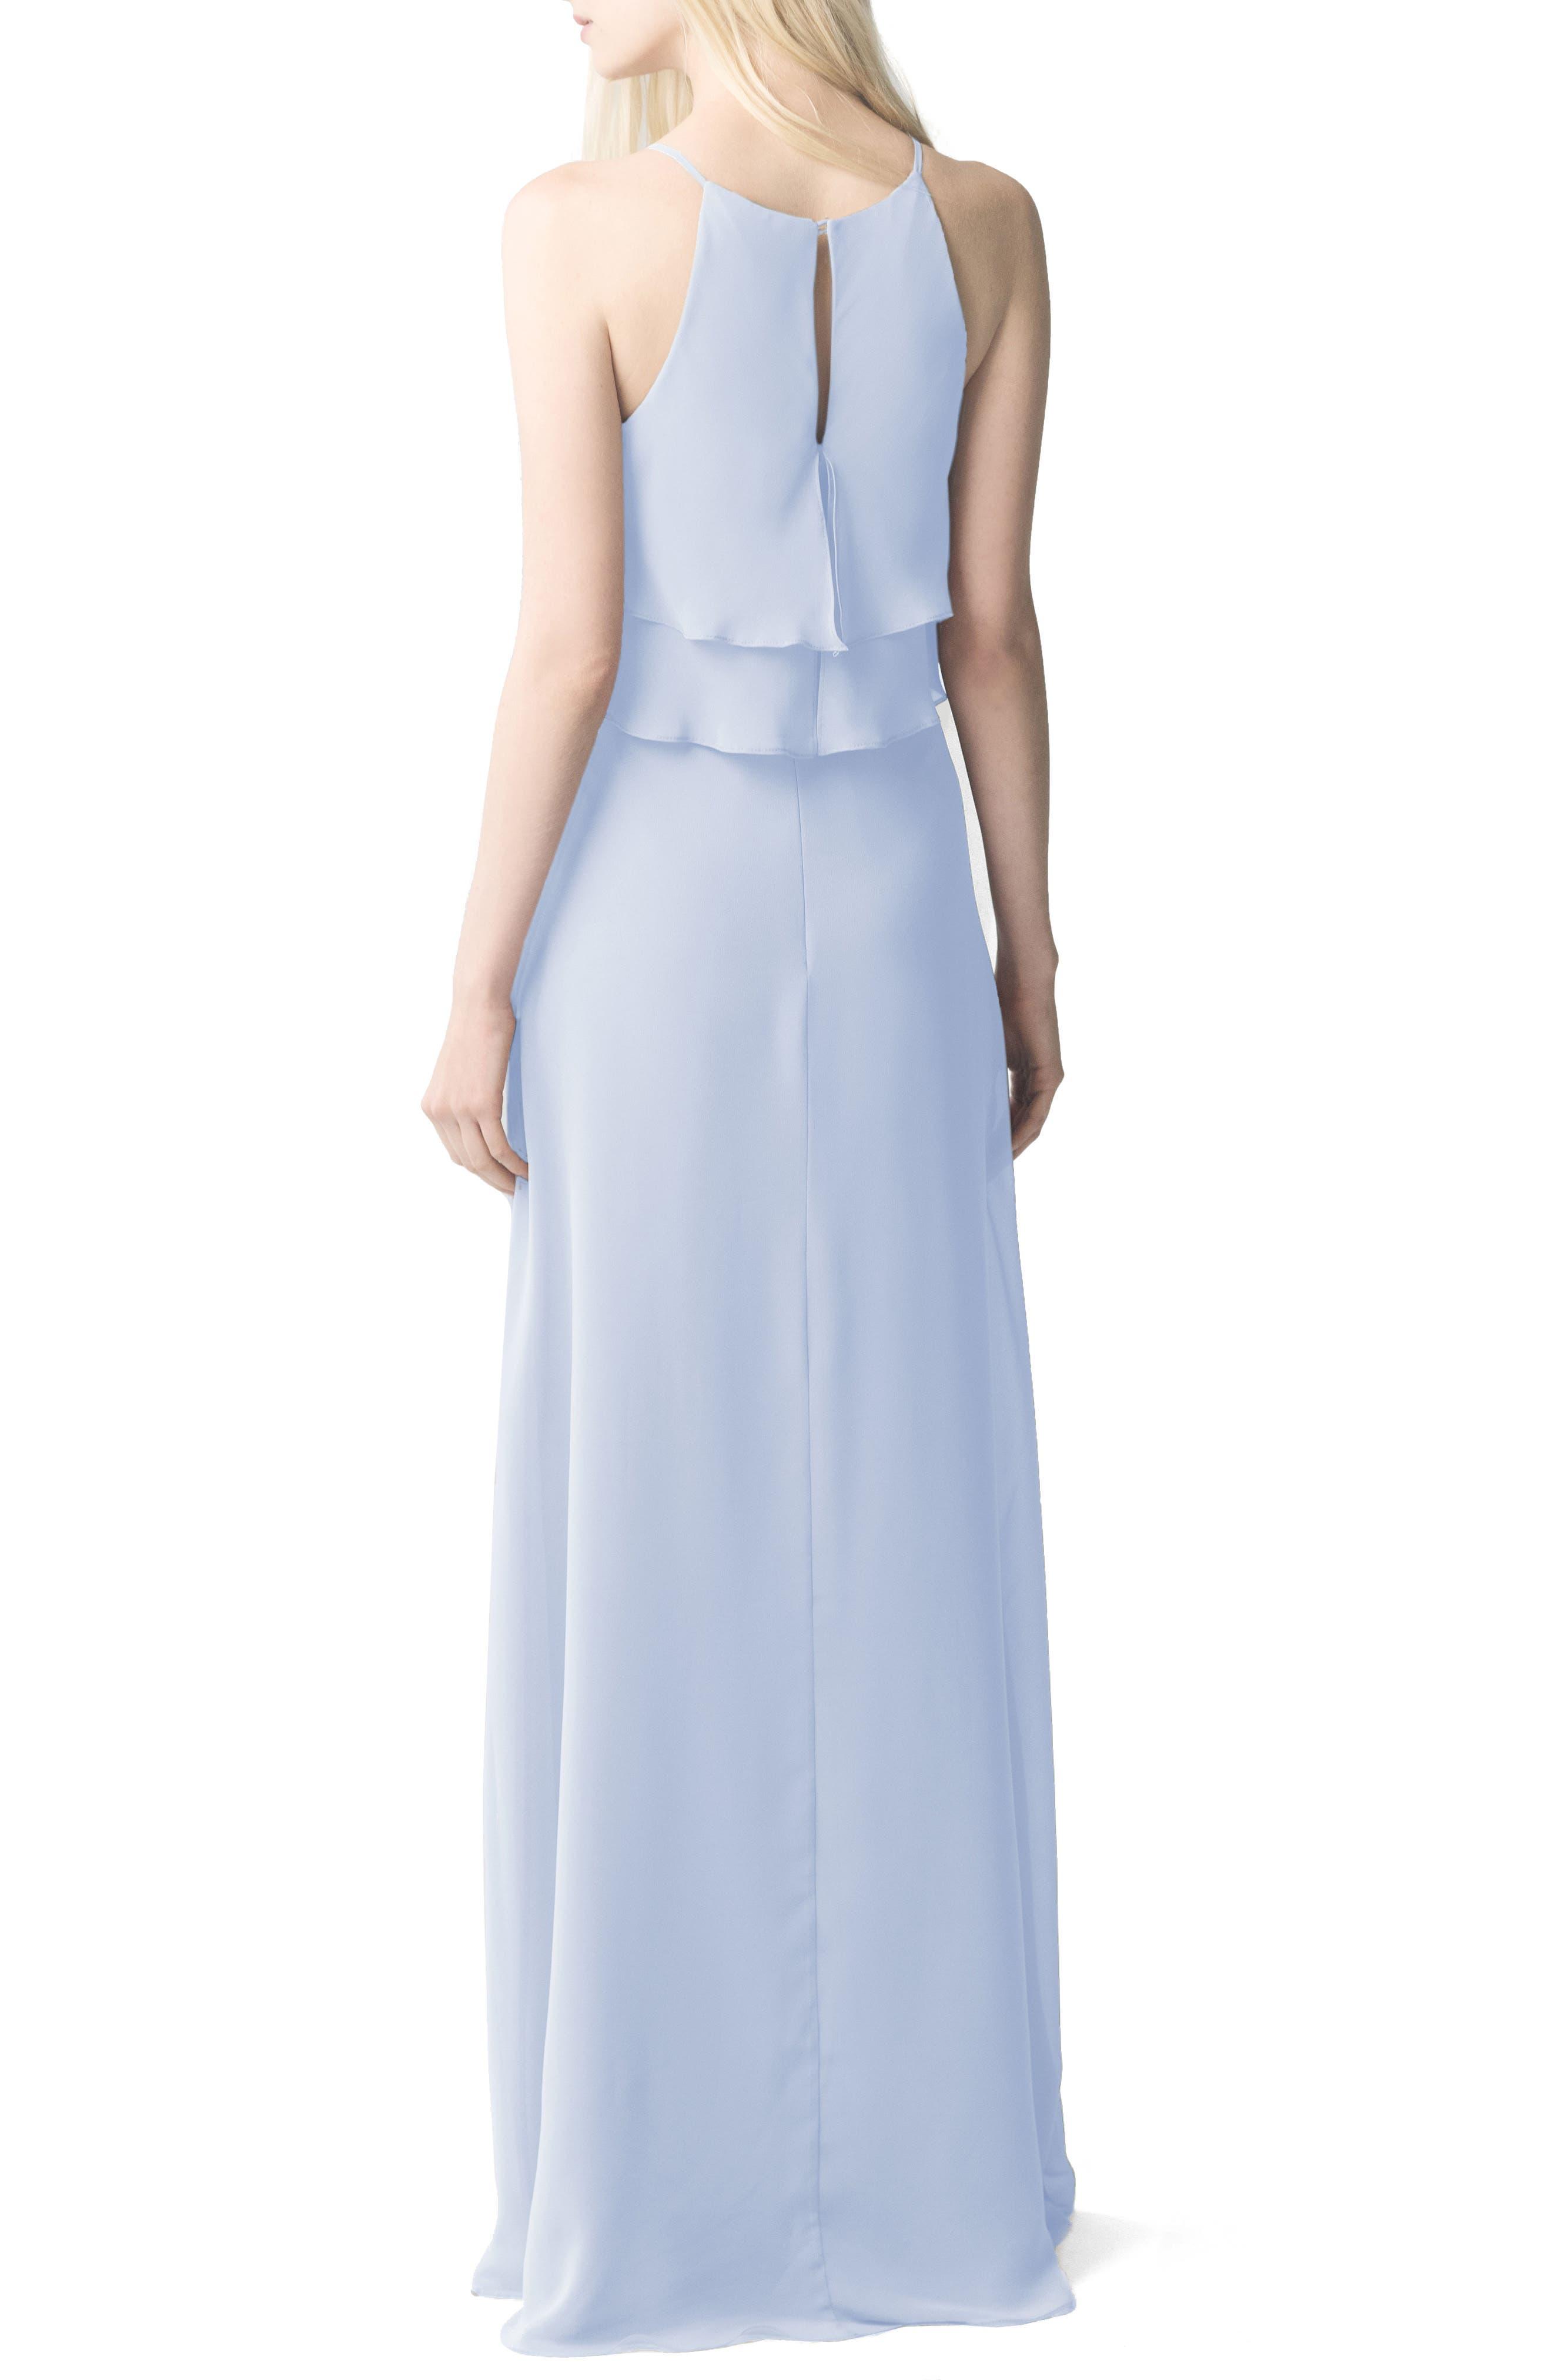 Charlie Ruffle Chiffon Gown,                             Alternate thumbnail 2, color,                             Whisper Blue